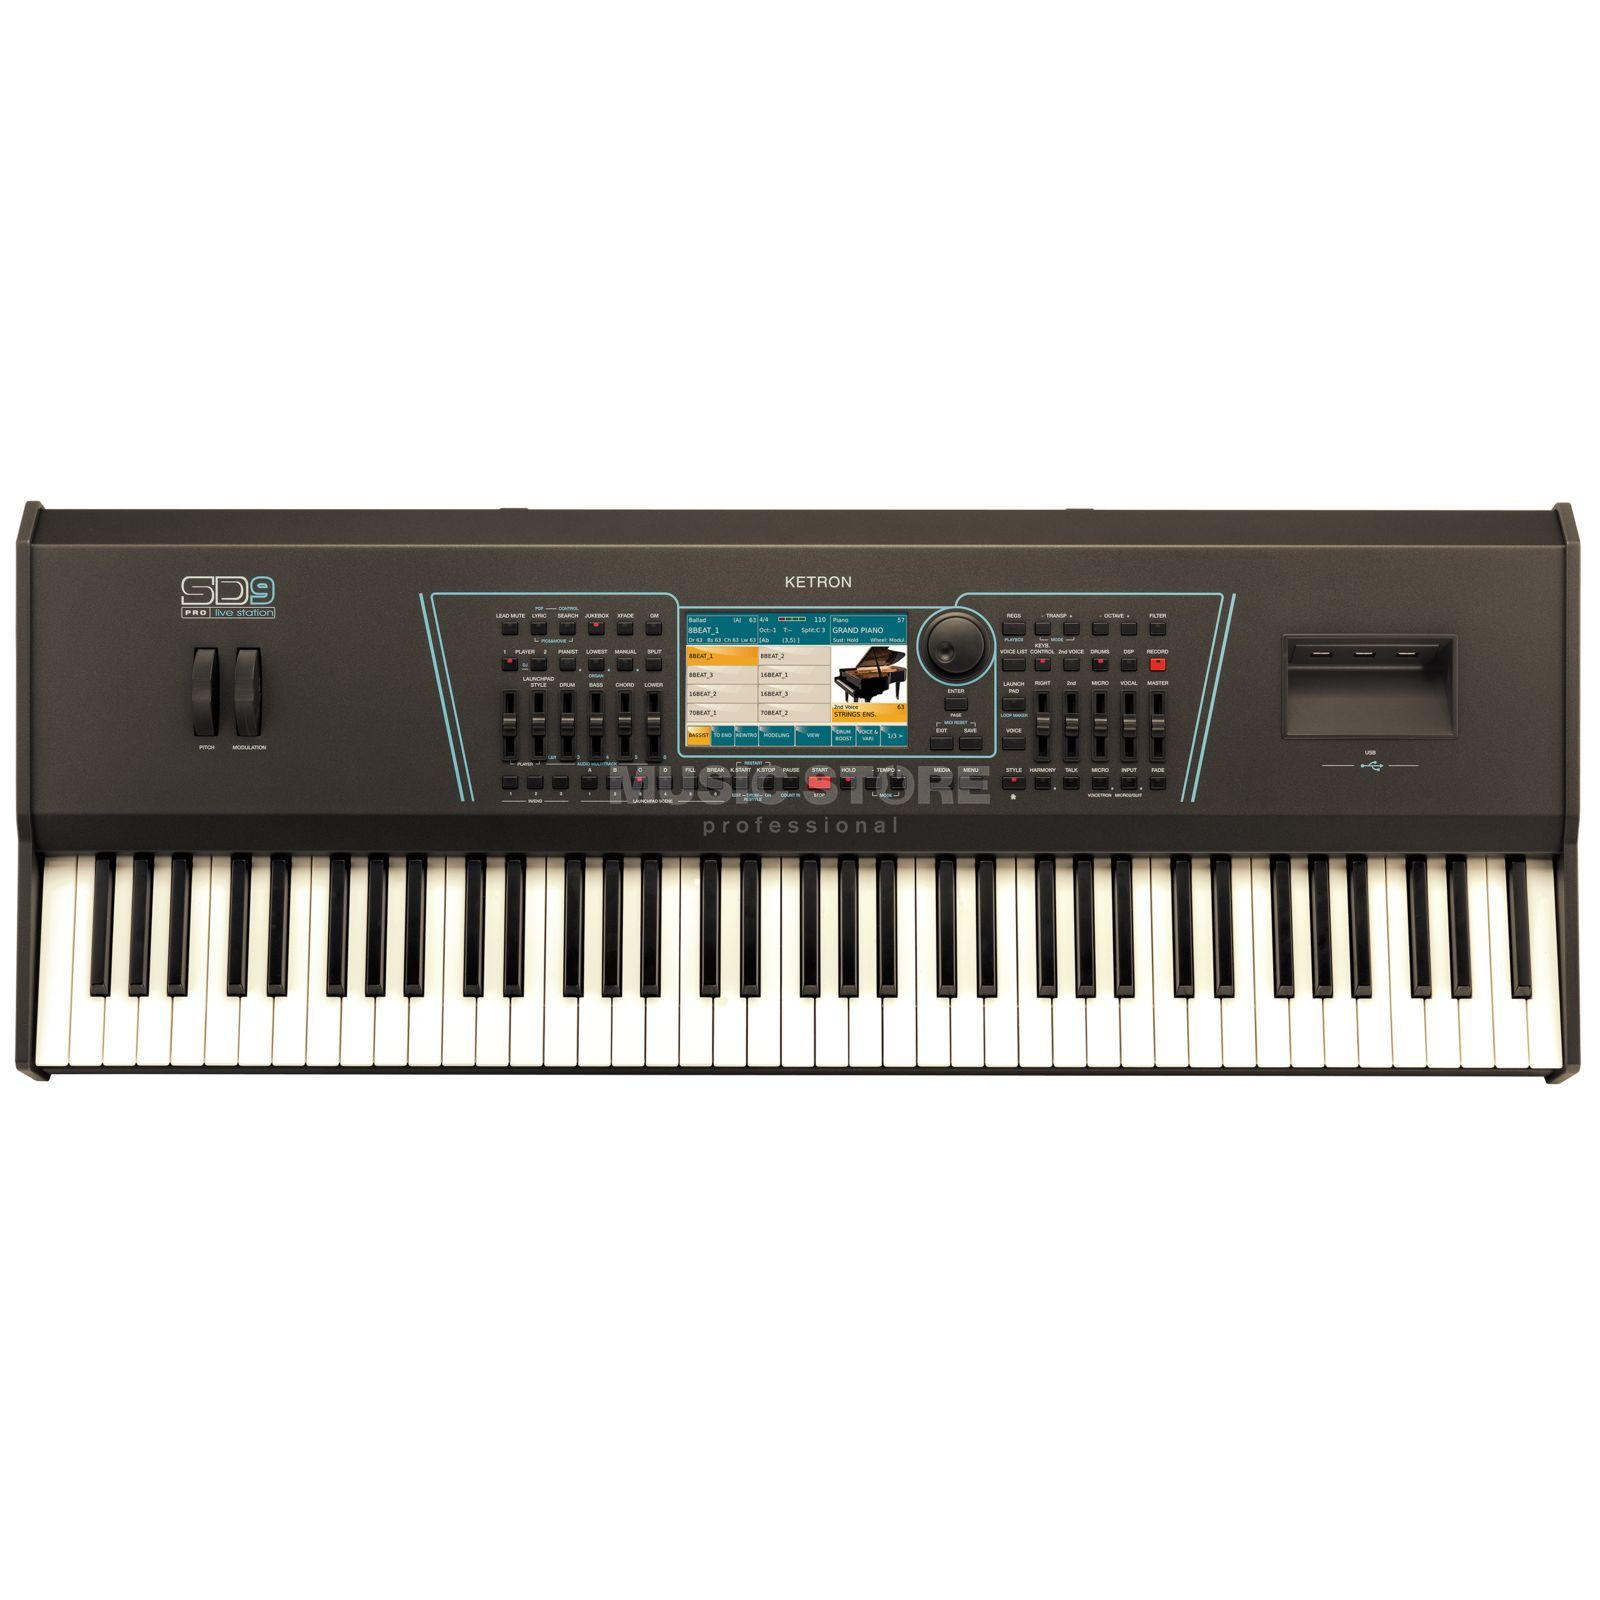 Ketron SD9 Entertainer Keyboard Produktbild